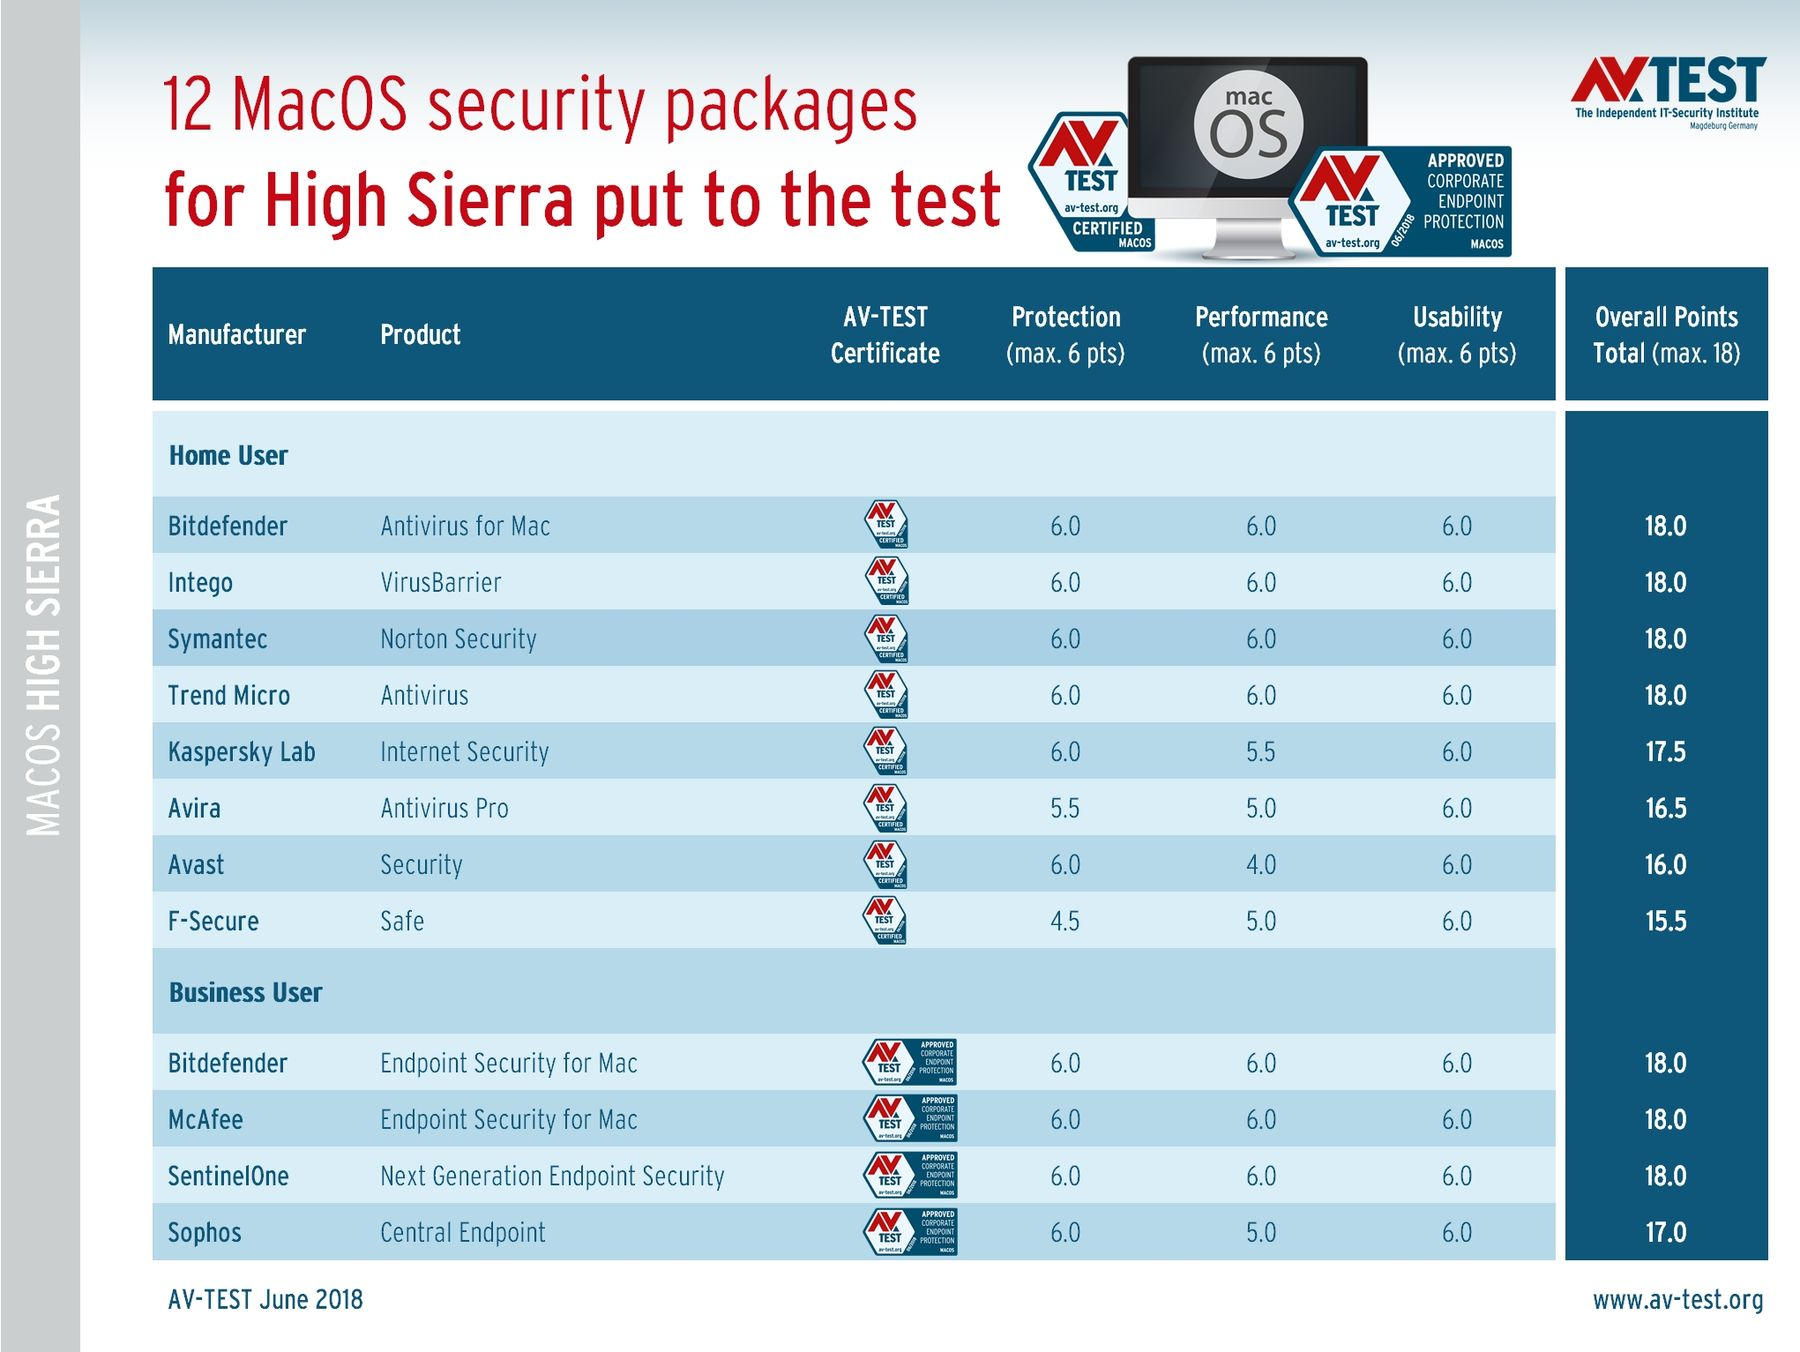 6 points out of 6 for performance, protection, and usability obtained by Bitdefender Antivirus for Mac in the latest AV-TEST GmbH test.